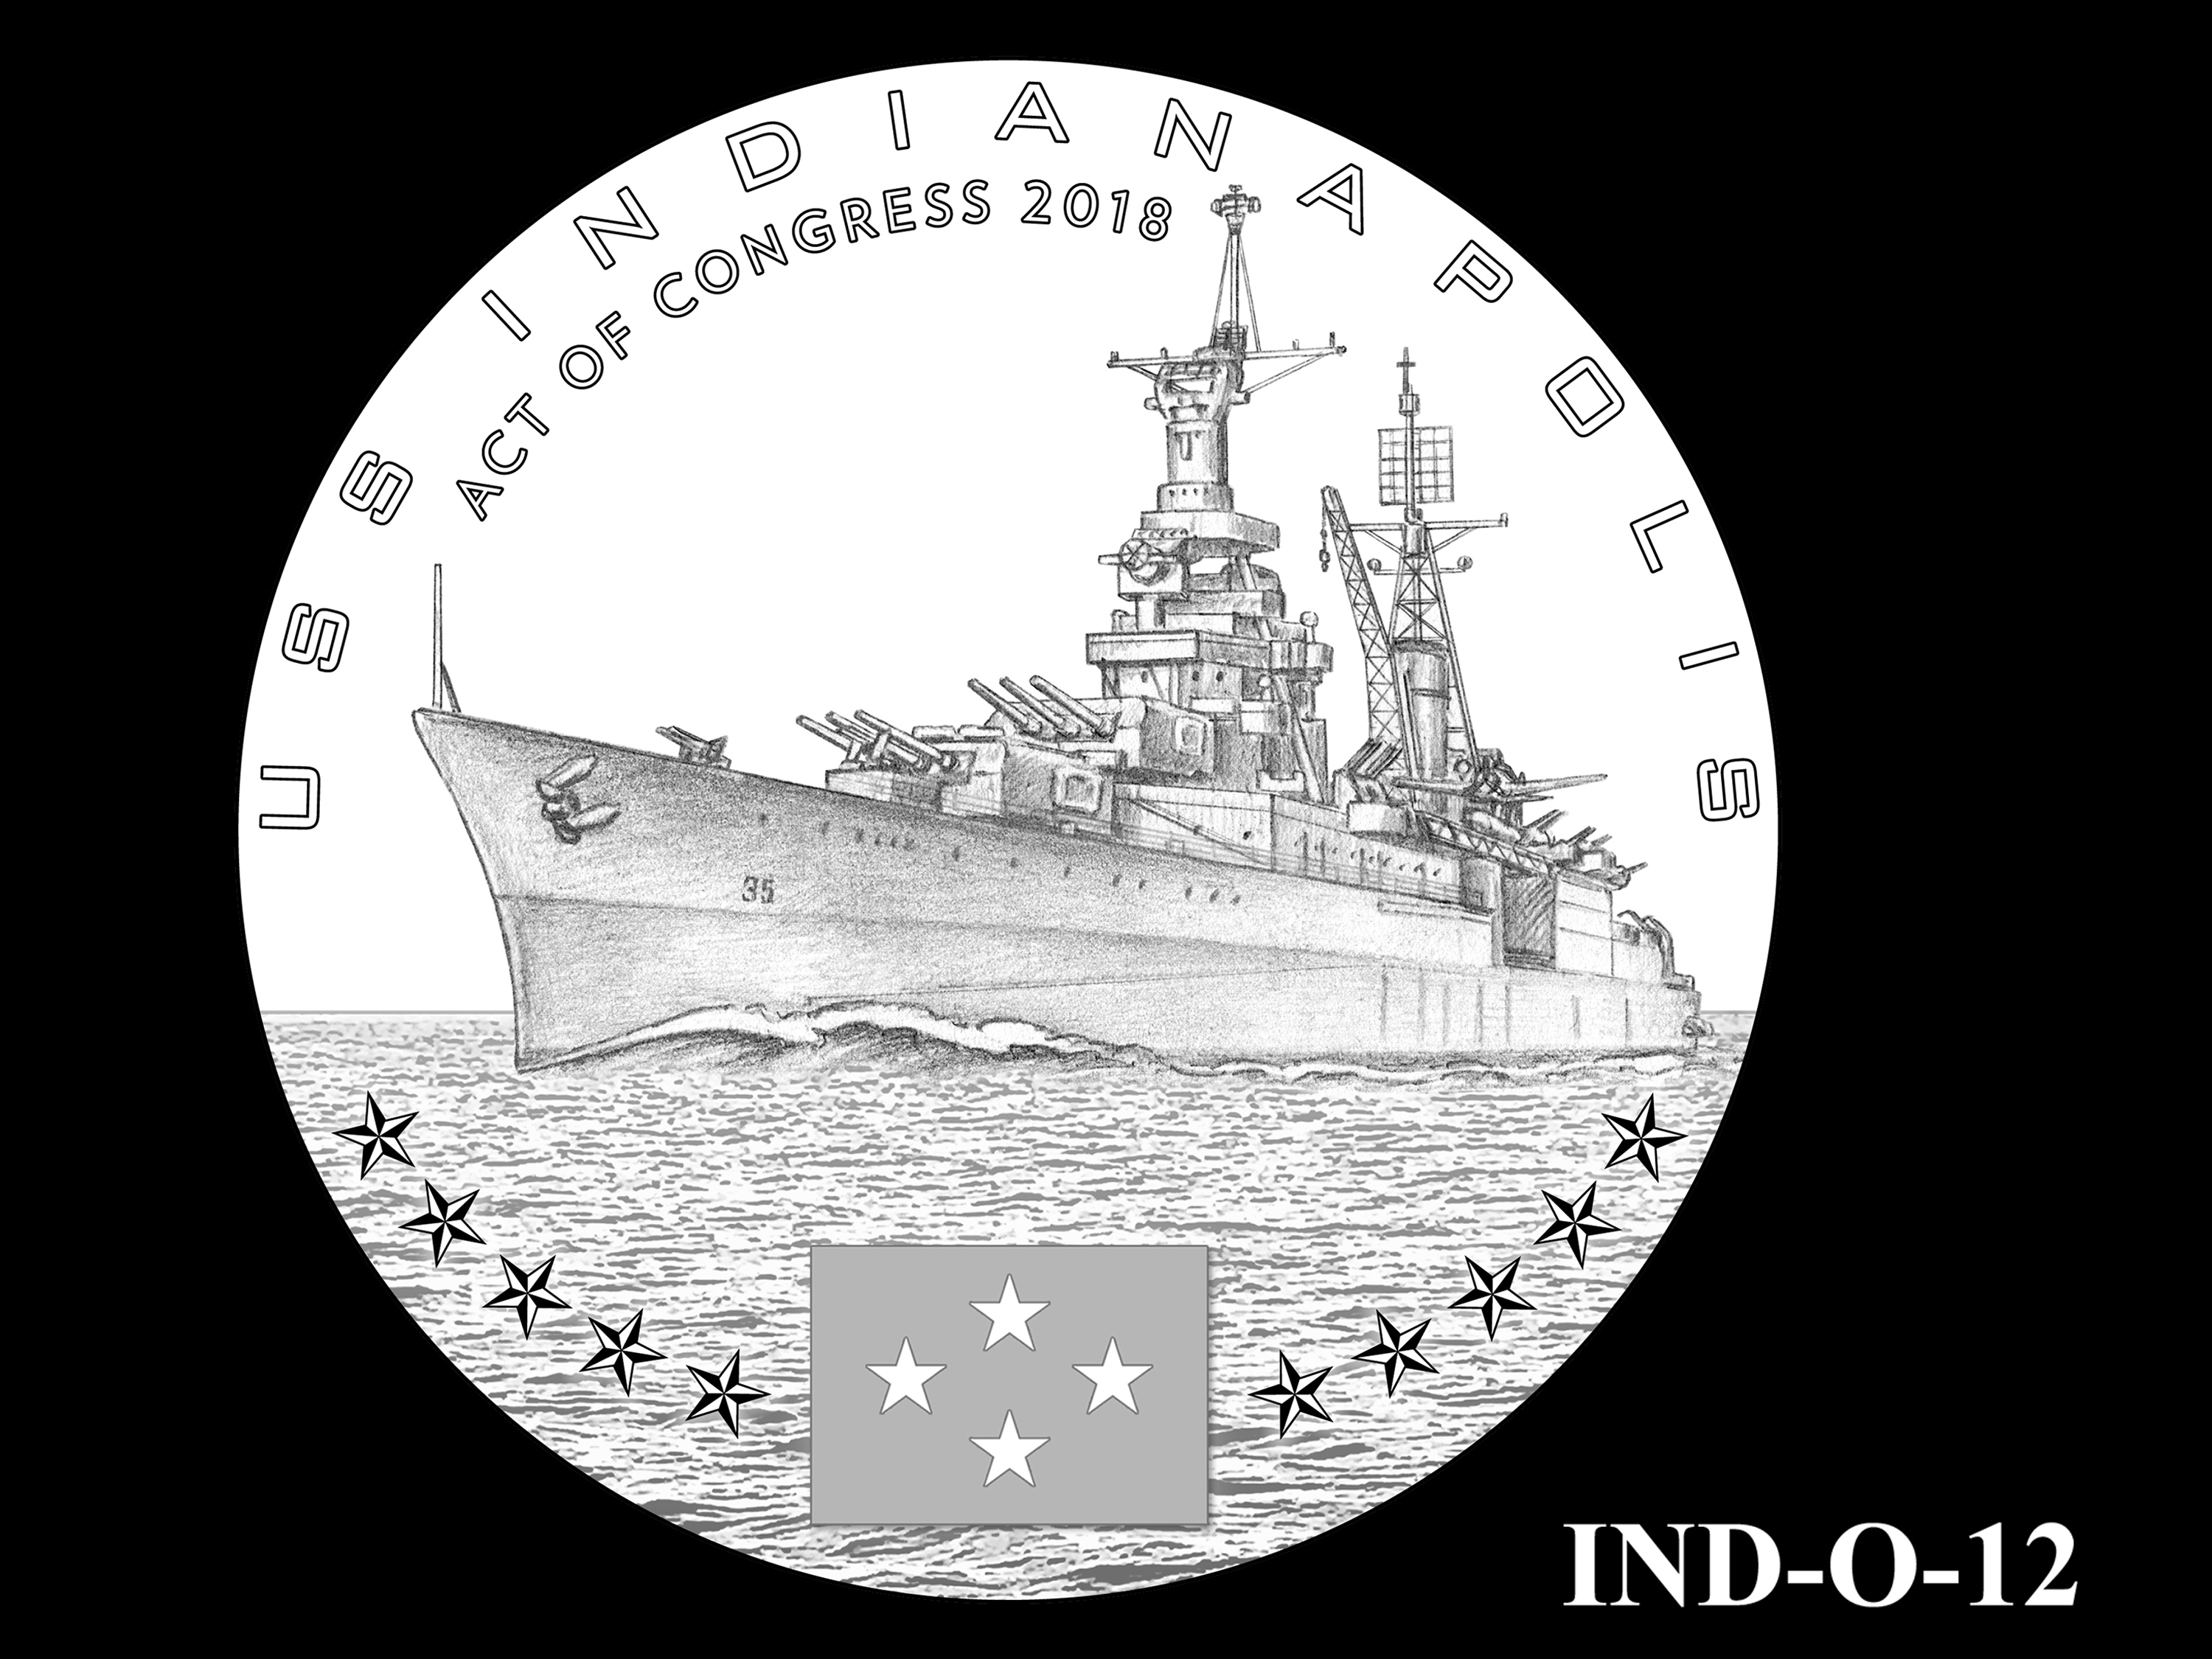 IND-O-12 - USS Indianapolis Congressional Gold Medal - Obverse